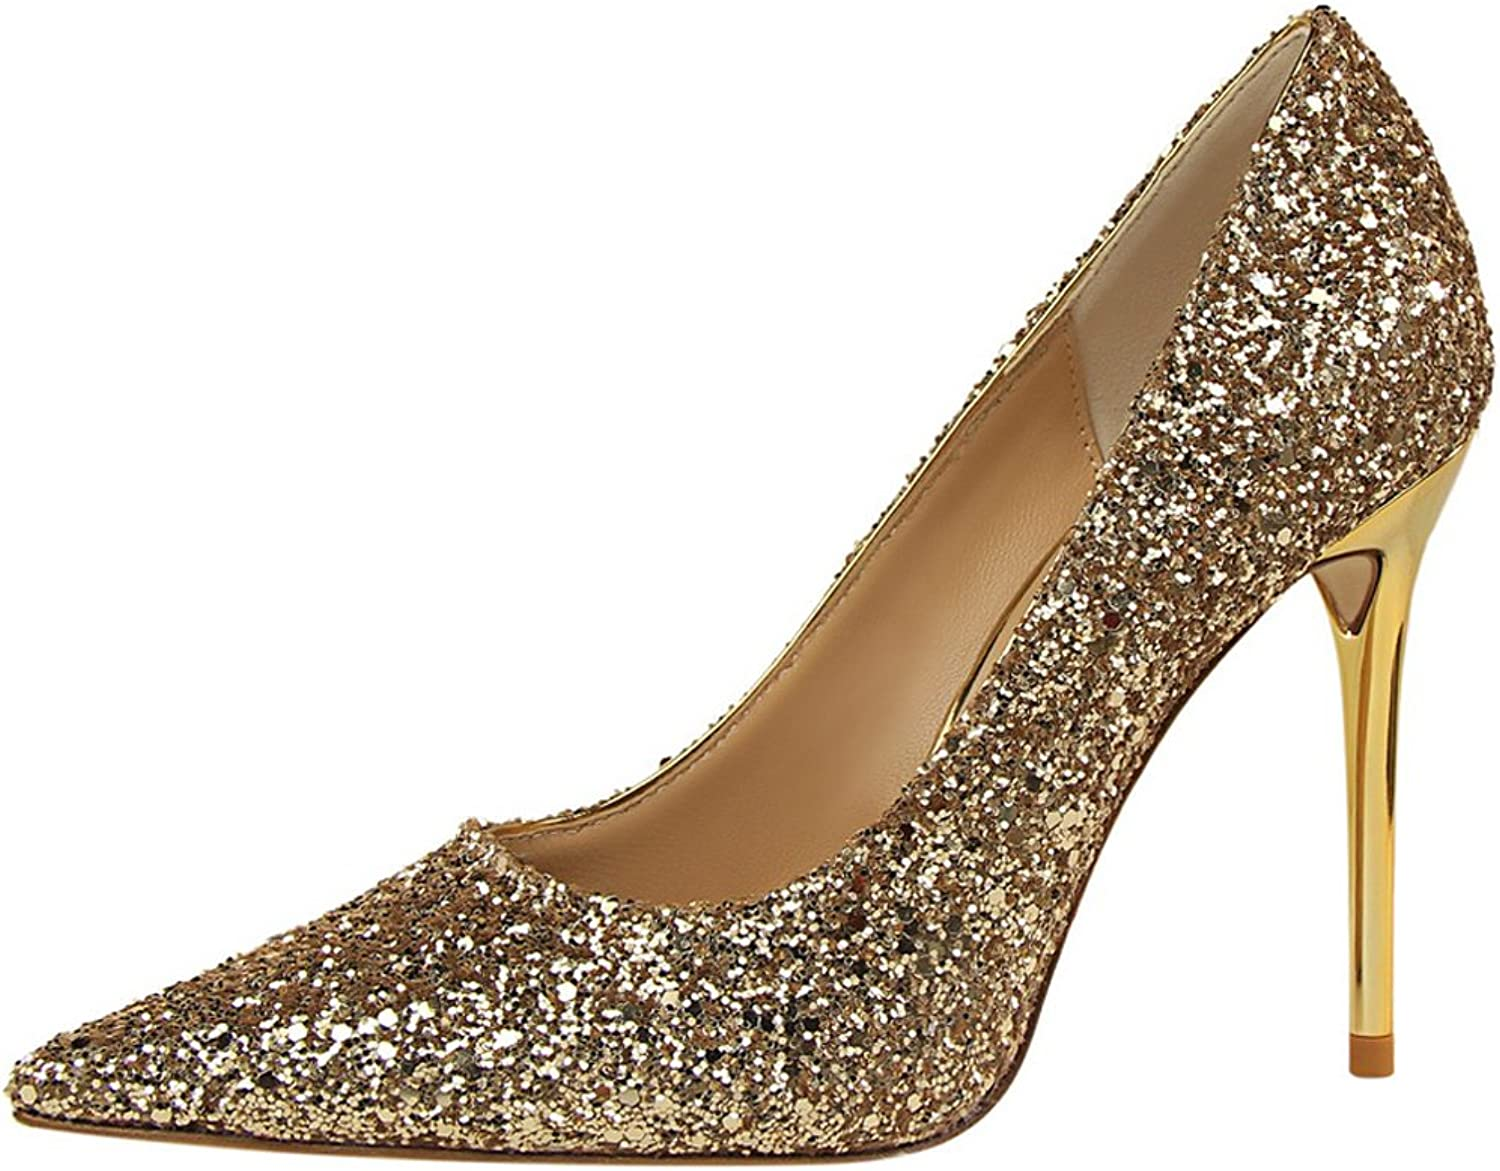 BIGTREE Sexy Shiny Sequins Wedding High Heel shoes Women Pointed Toe Dress Pumps